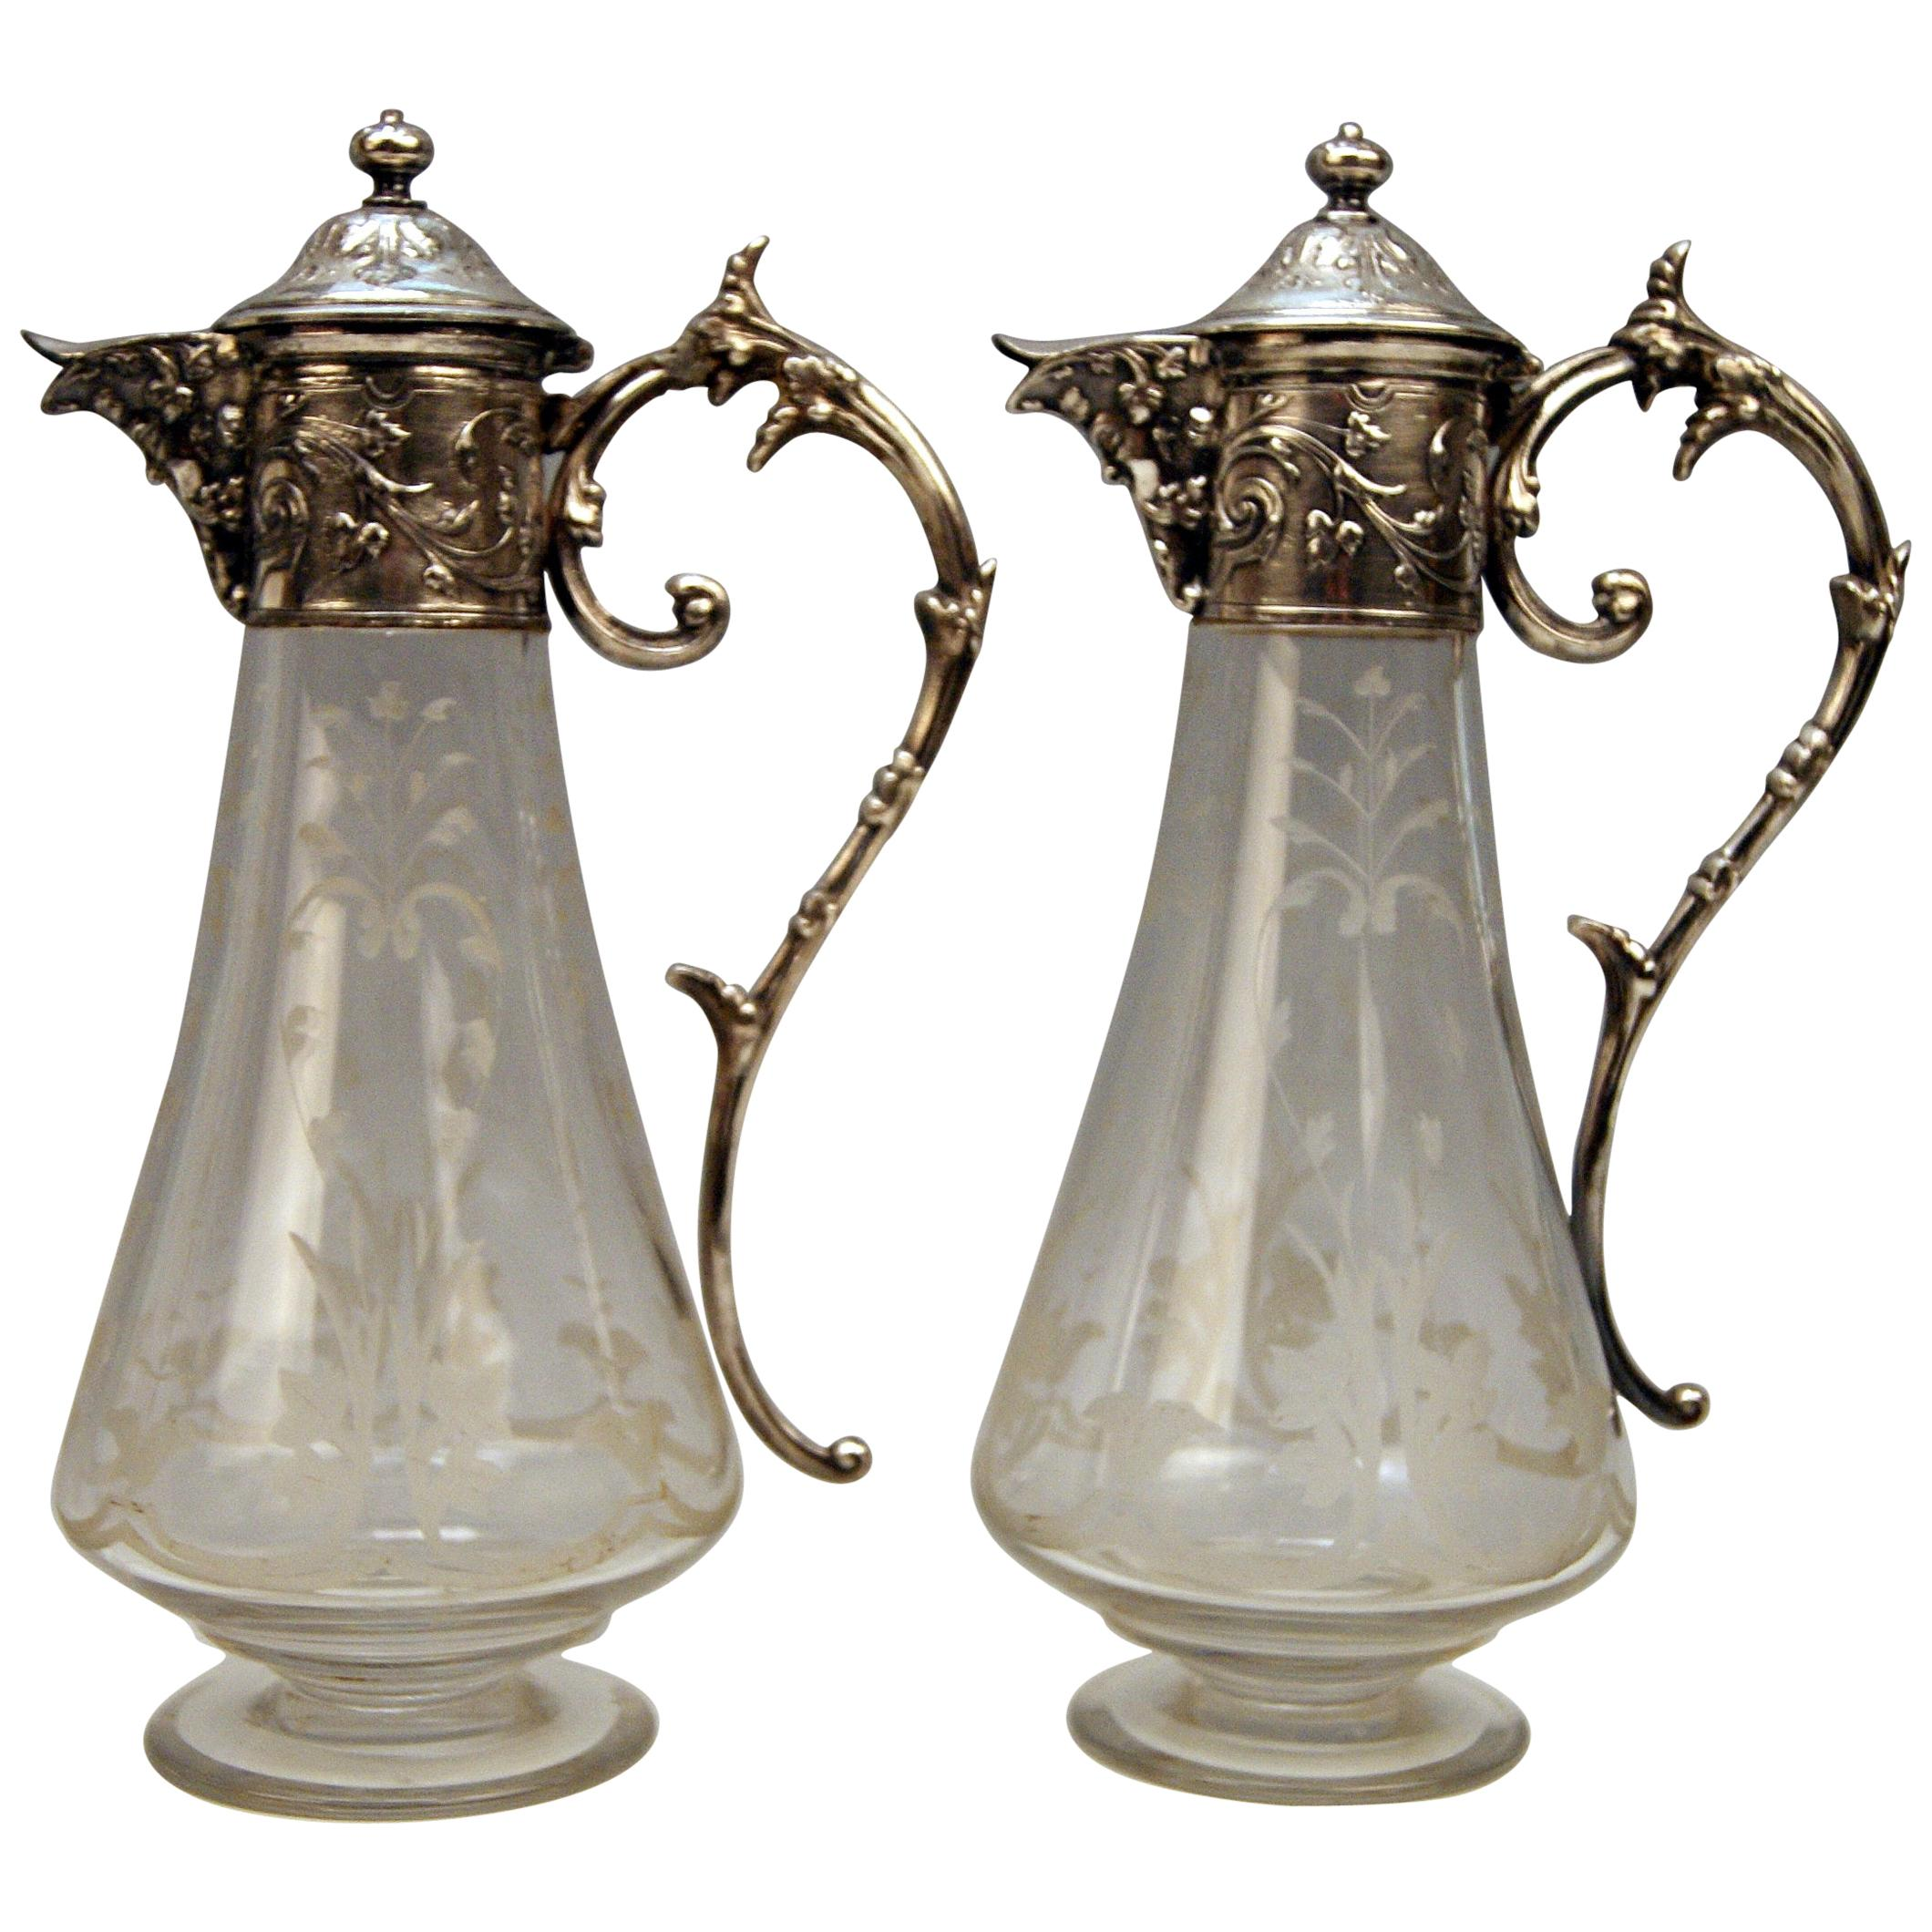 WMF Art Nouveau Pair of Claret and Water Jugs Silver Plated, Germany, circa 1900